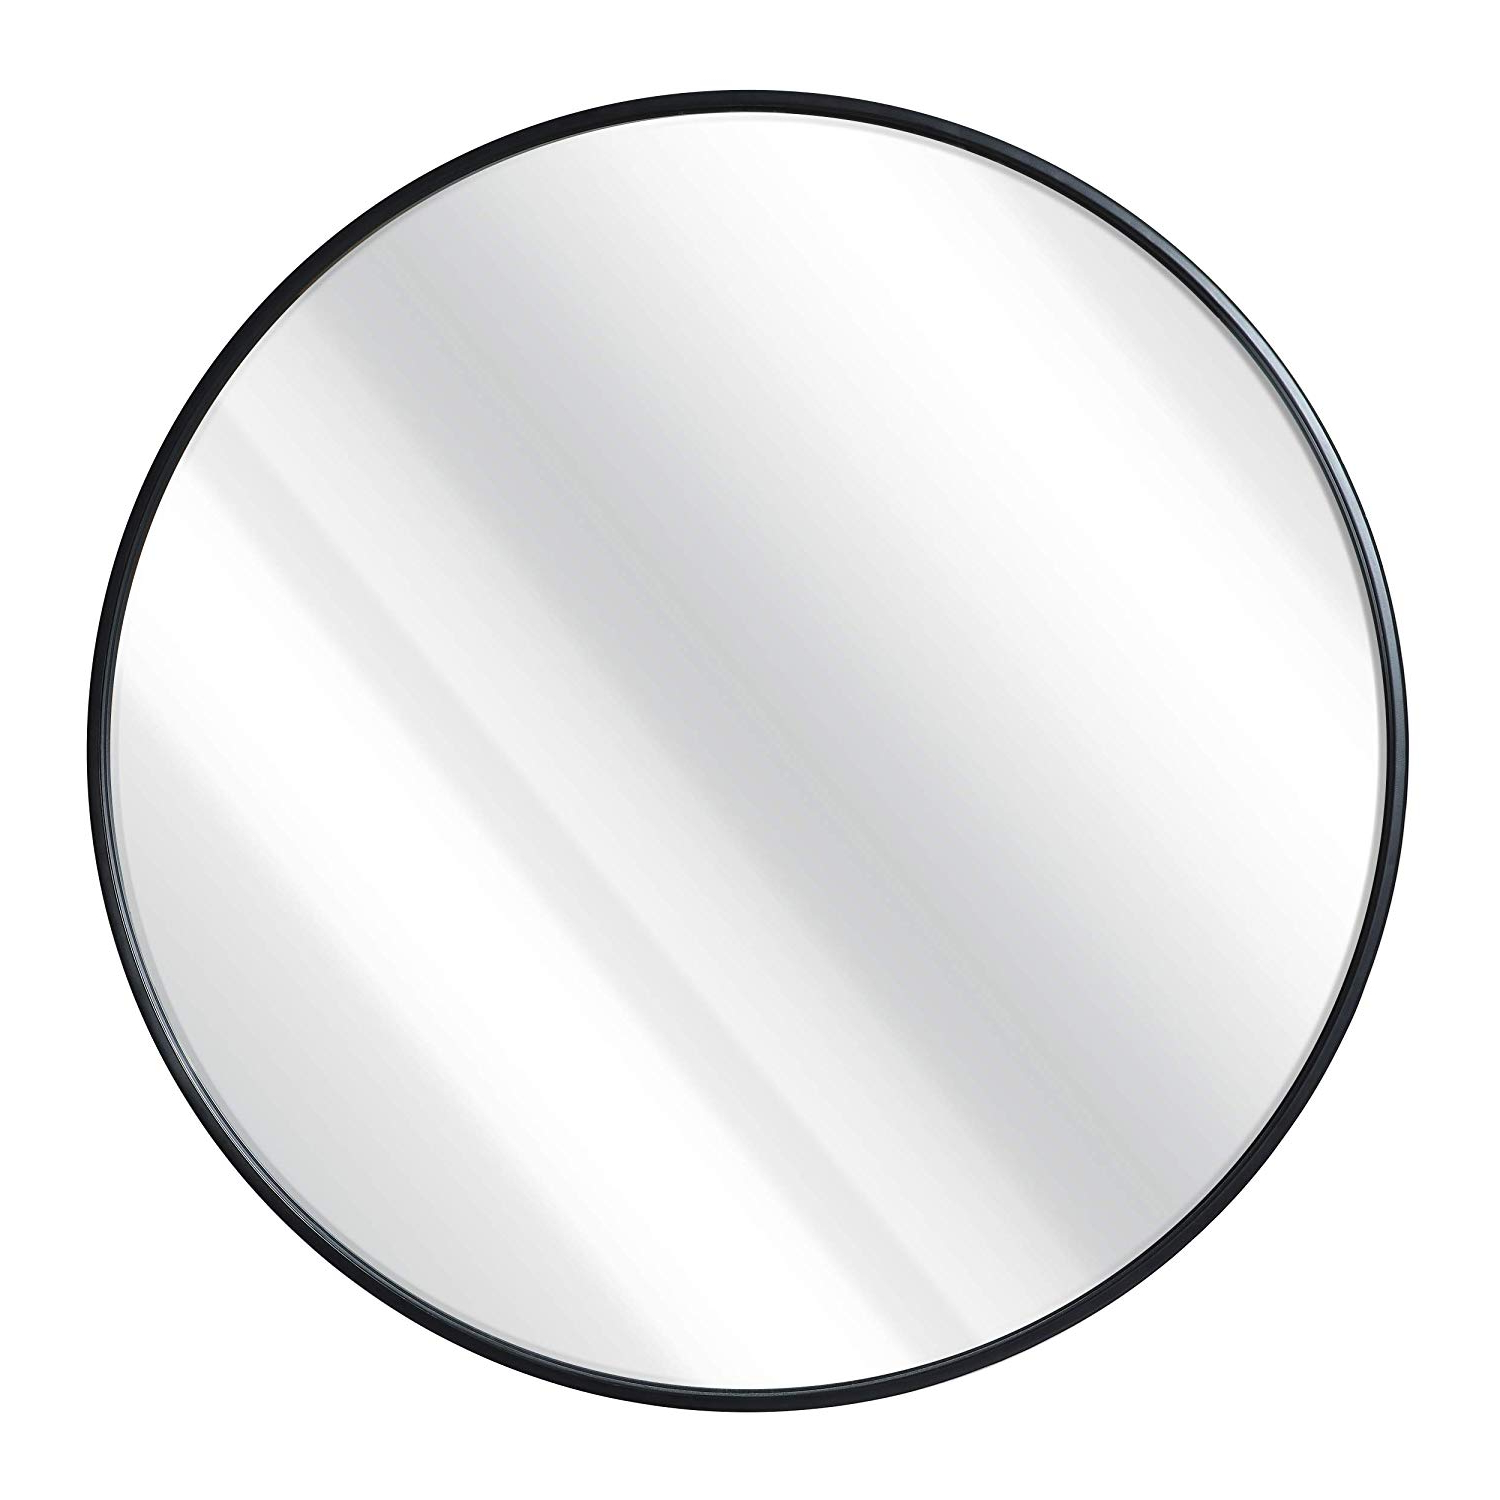 Preferred Black Round Wall Mirrors Regarding Black Round Wall Mirror – 24 Inch Large Round Mirror, Rustic Accent Mirror For Bathroom, Entry, Dining Room, & Living Room (View 2 of 20)